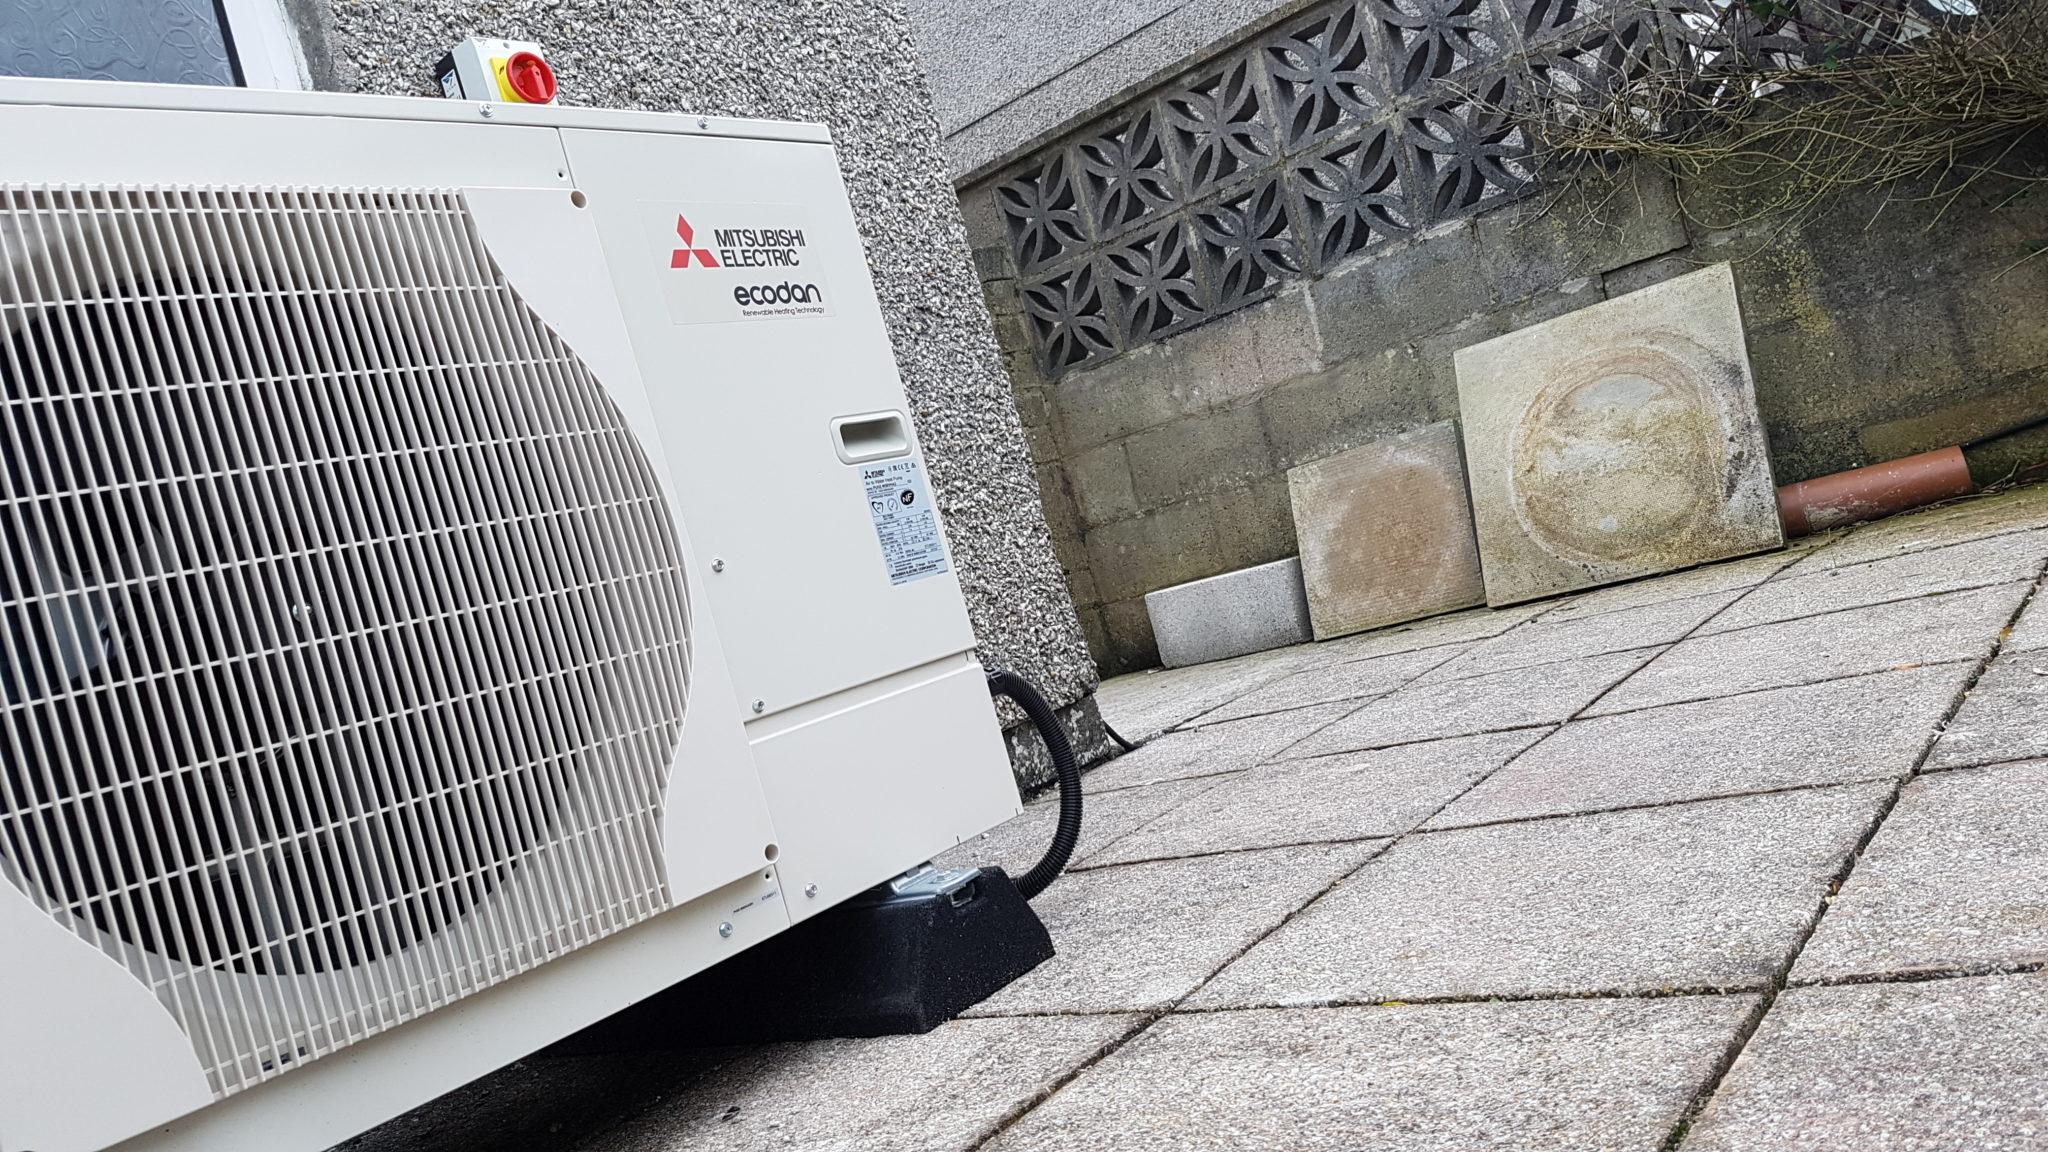 #5B4F43 5kW Air Source Heat Pump Installation The Lizard GreenGenUK Most Effective 6765 Through The Wall Heat Pumps pictures with 2048x1152 px on helpvideos.info - Air Conditioners, Air Coolers and more